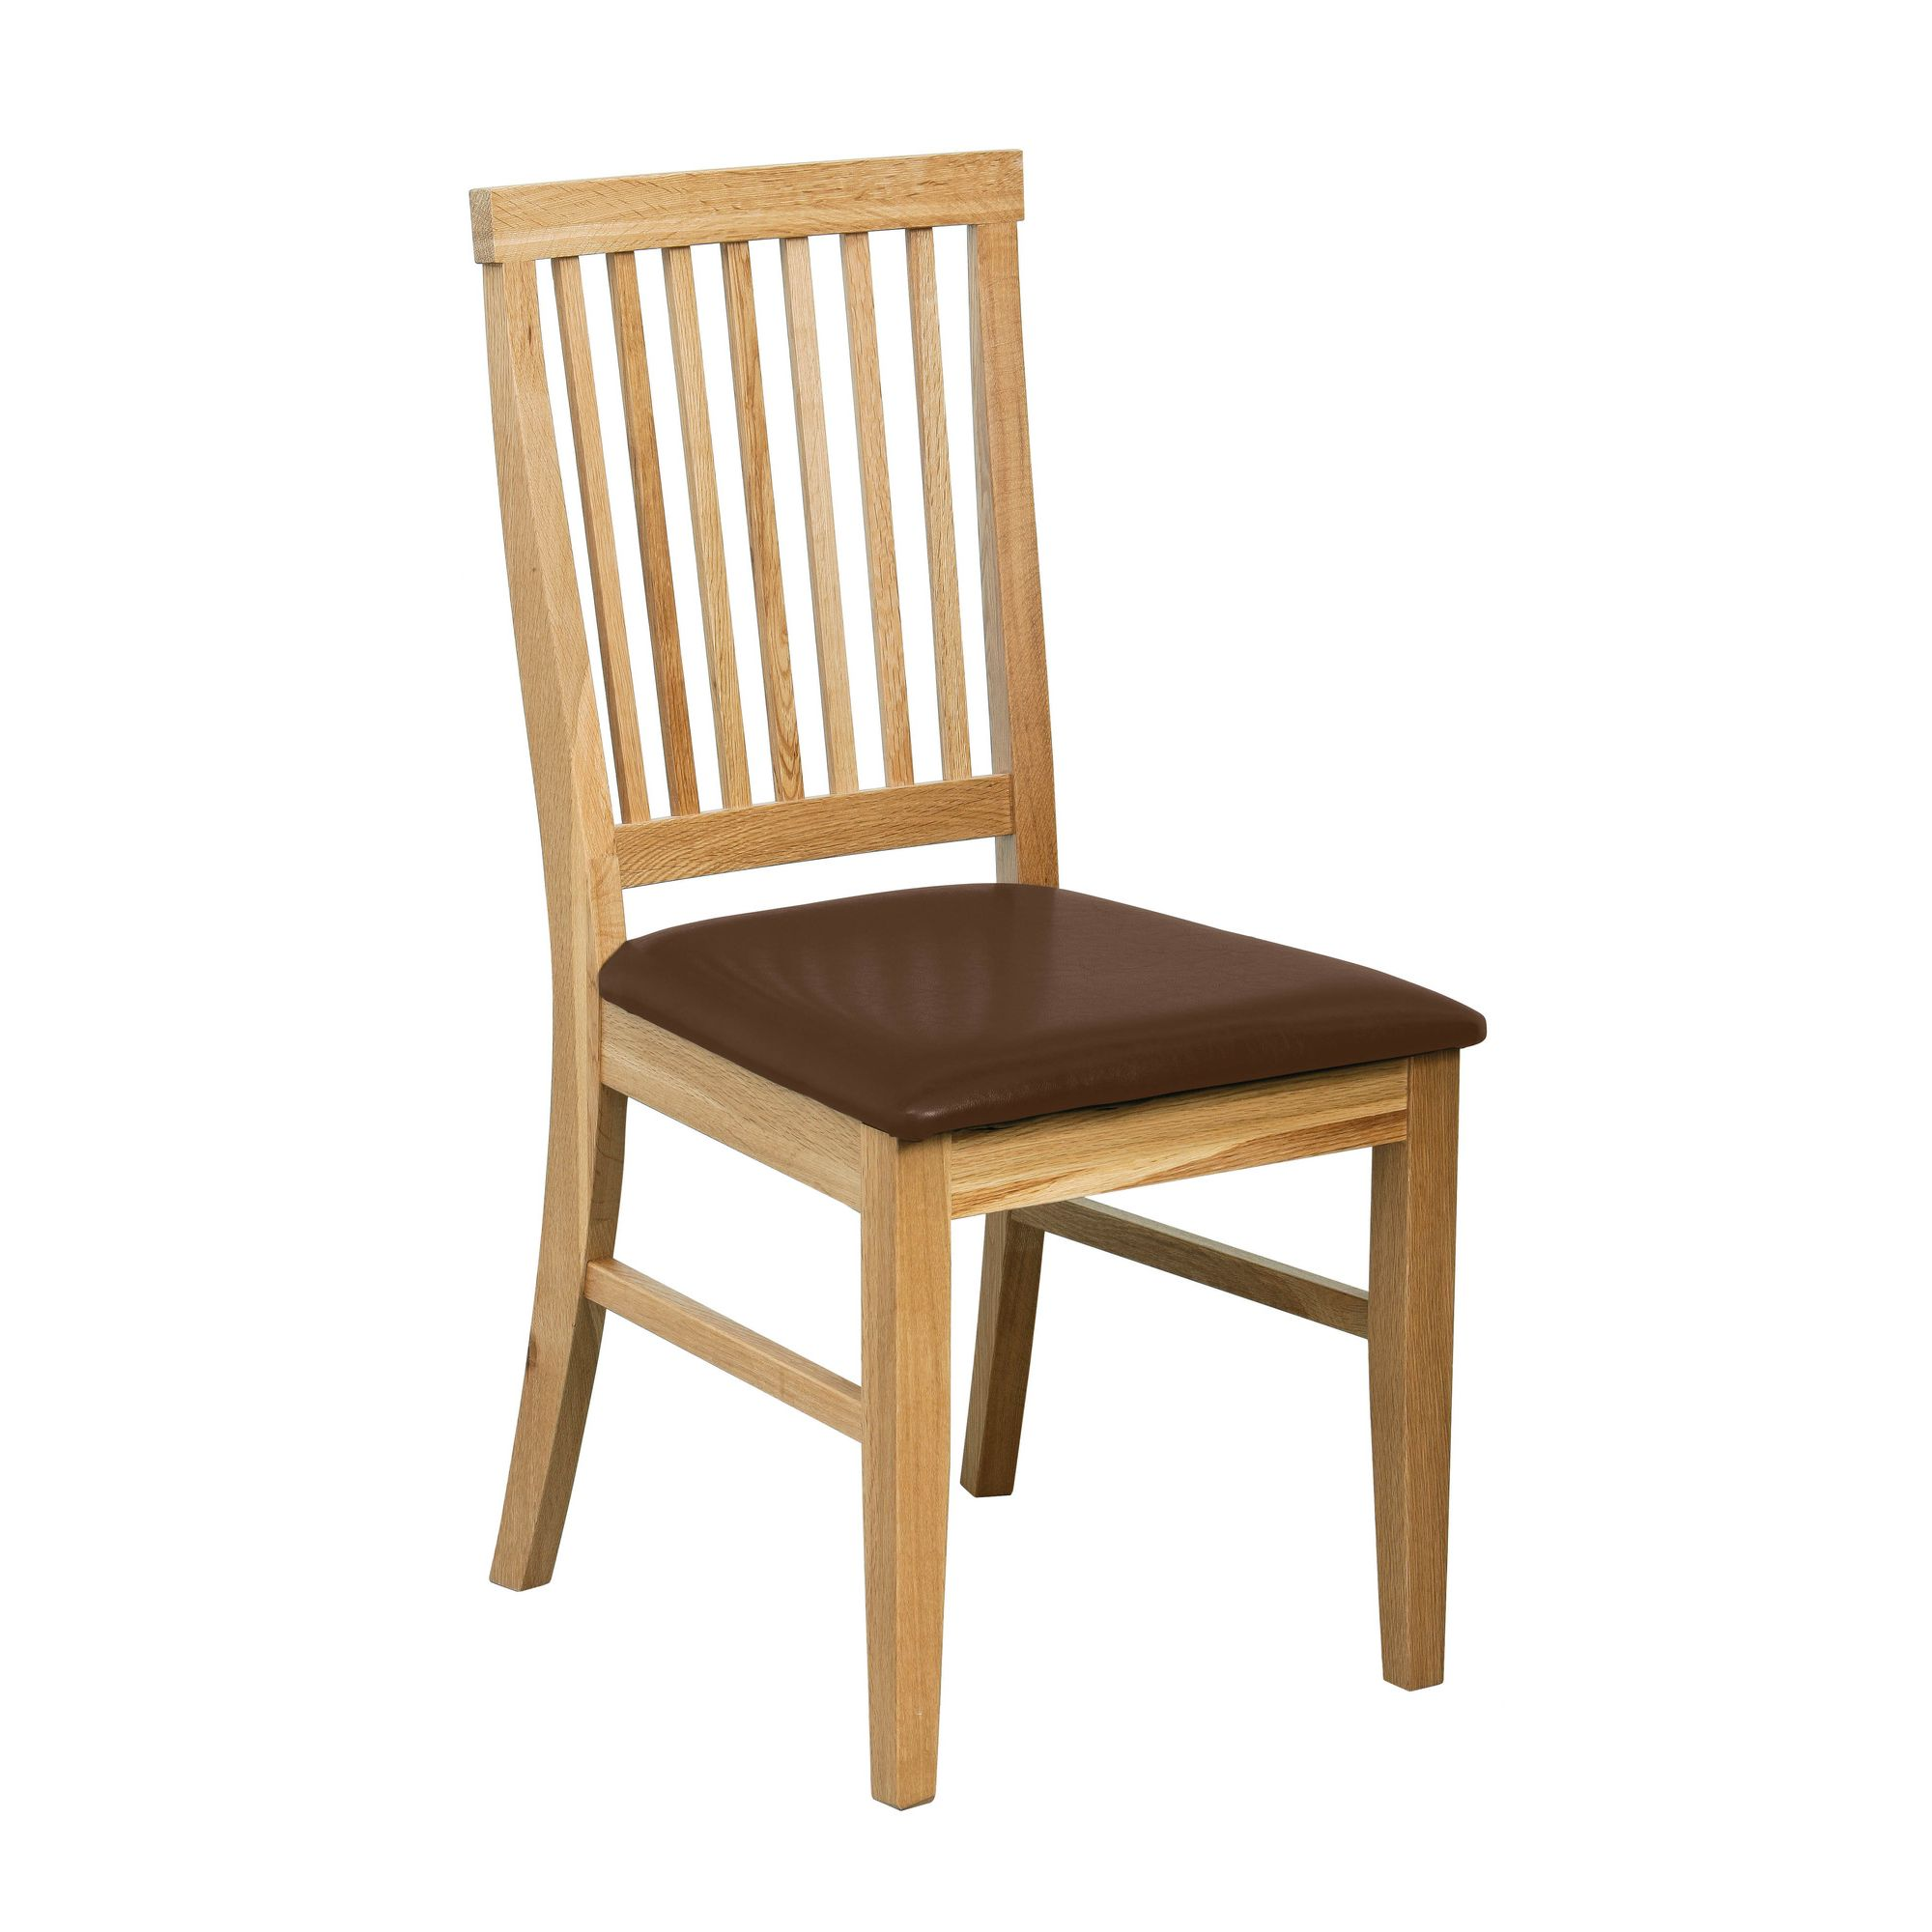 Premier Housewares Solid Oak Dining Chair with Brown PU Leather seatpad (Set of 2)